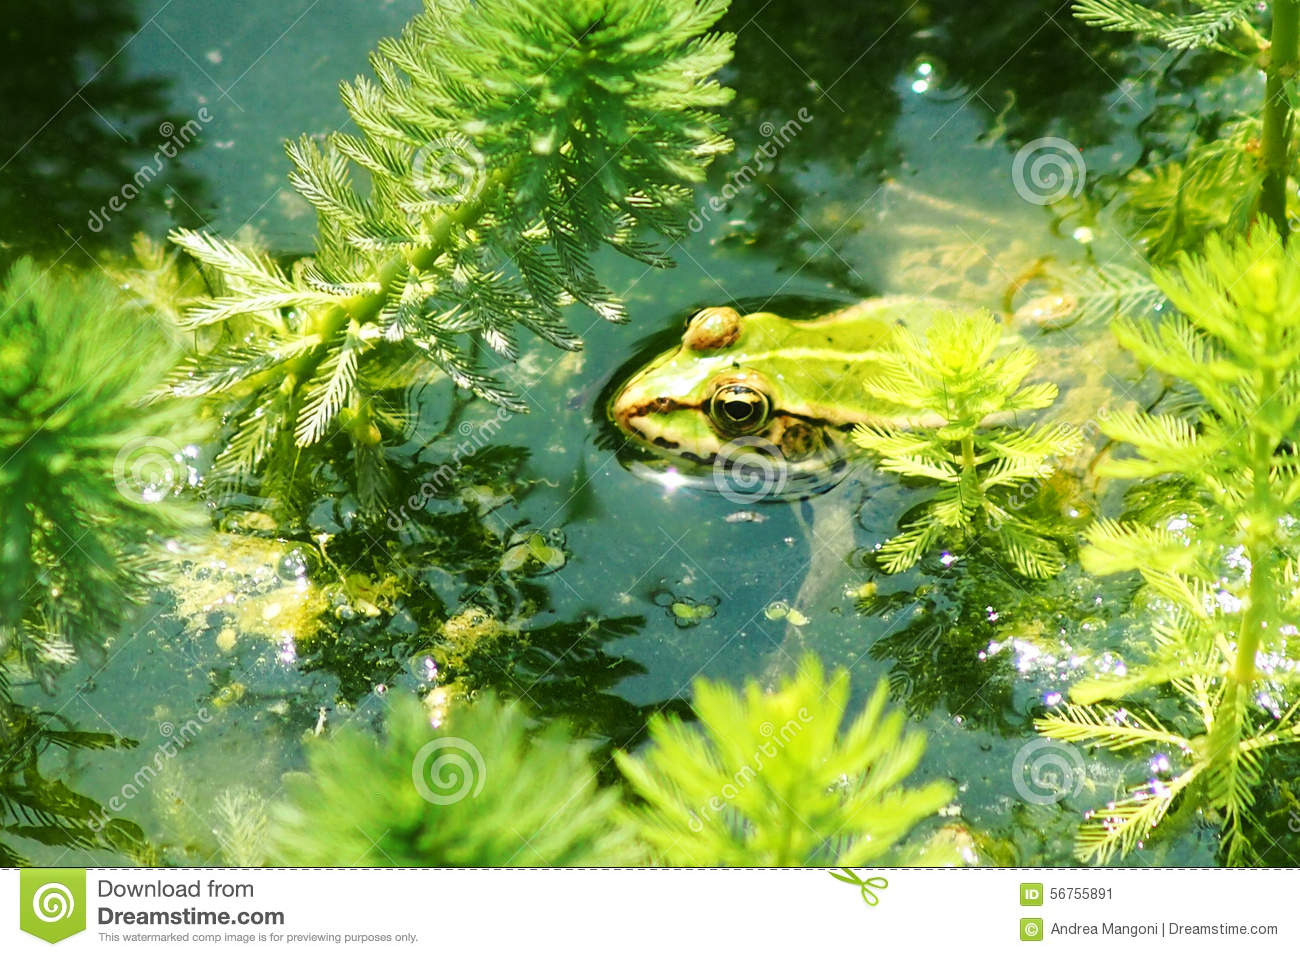 Frog in the pond stock photo 51137352 for Pond dealers